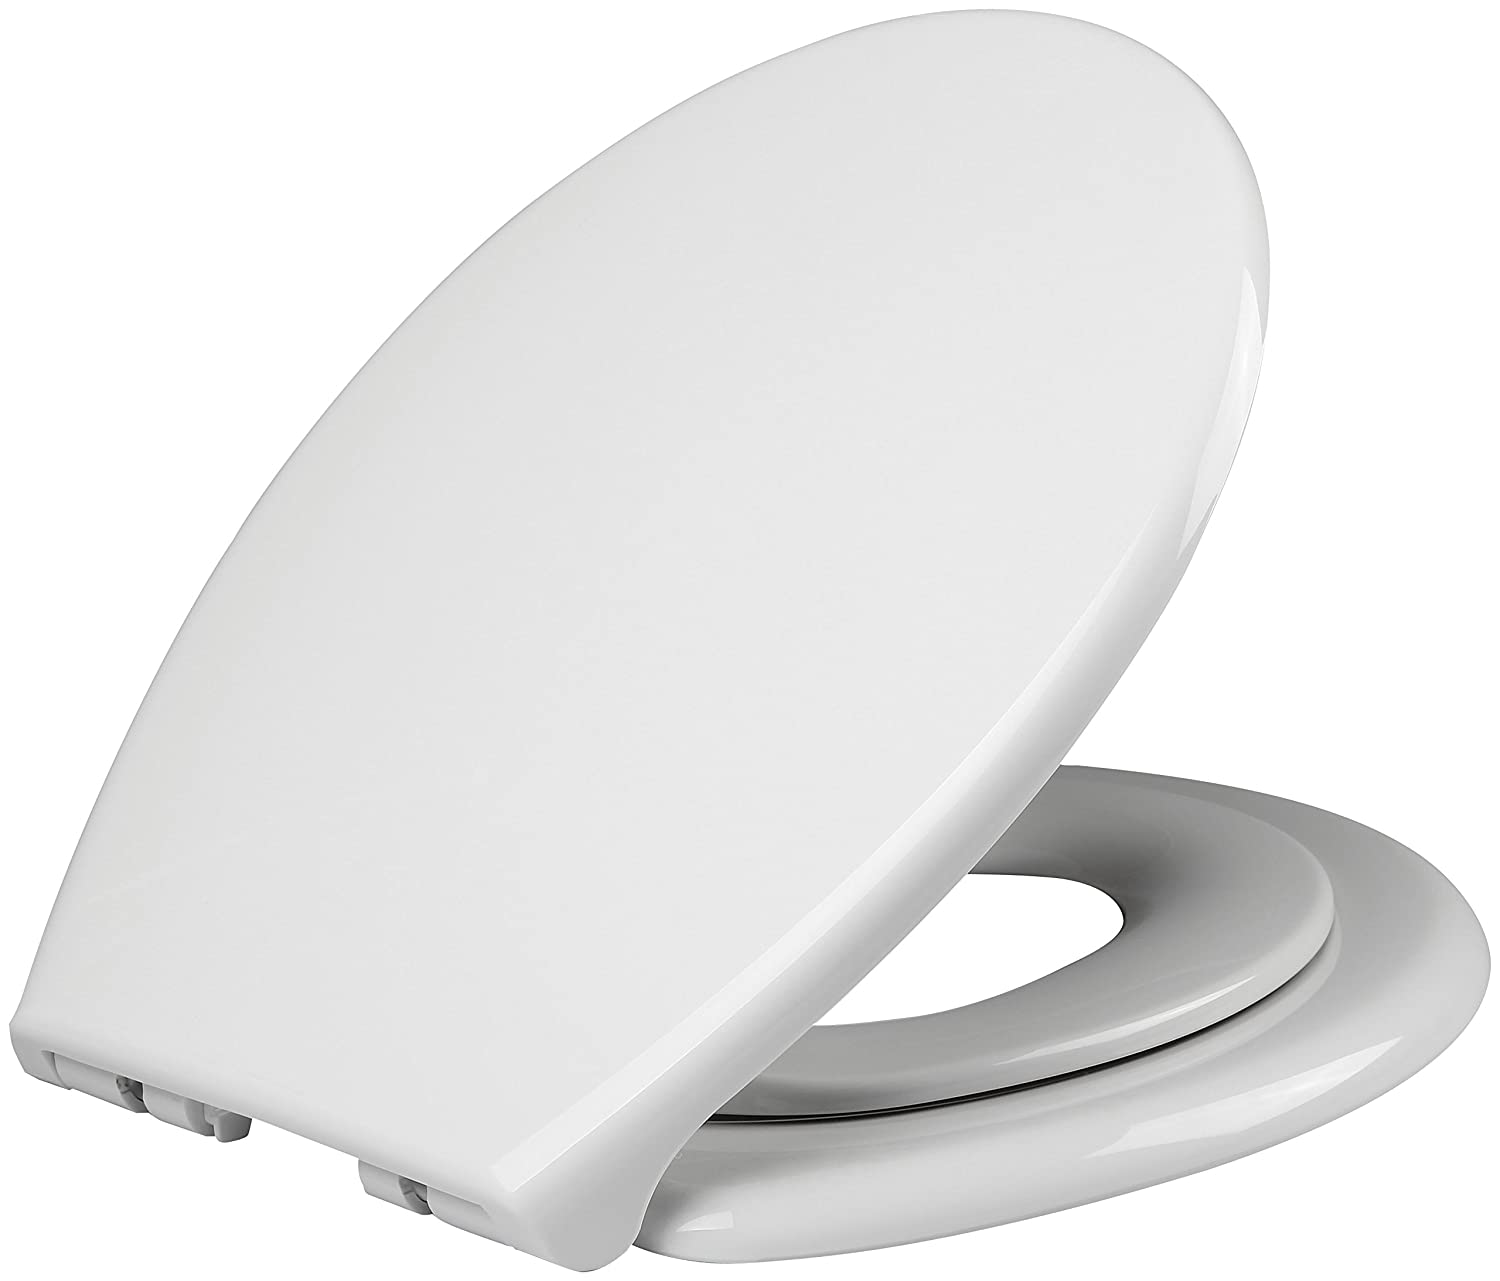 Peachy Toilet Seats Euroshowers Square Shaped Soft Close Toilet Gmtry Best Dining Table And Chair Ideas Images Gmtryco